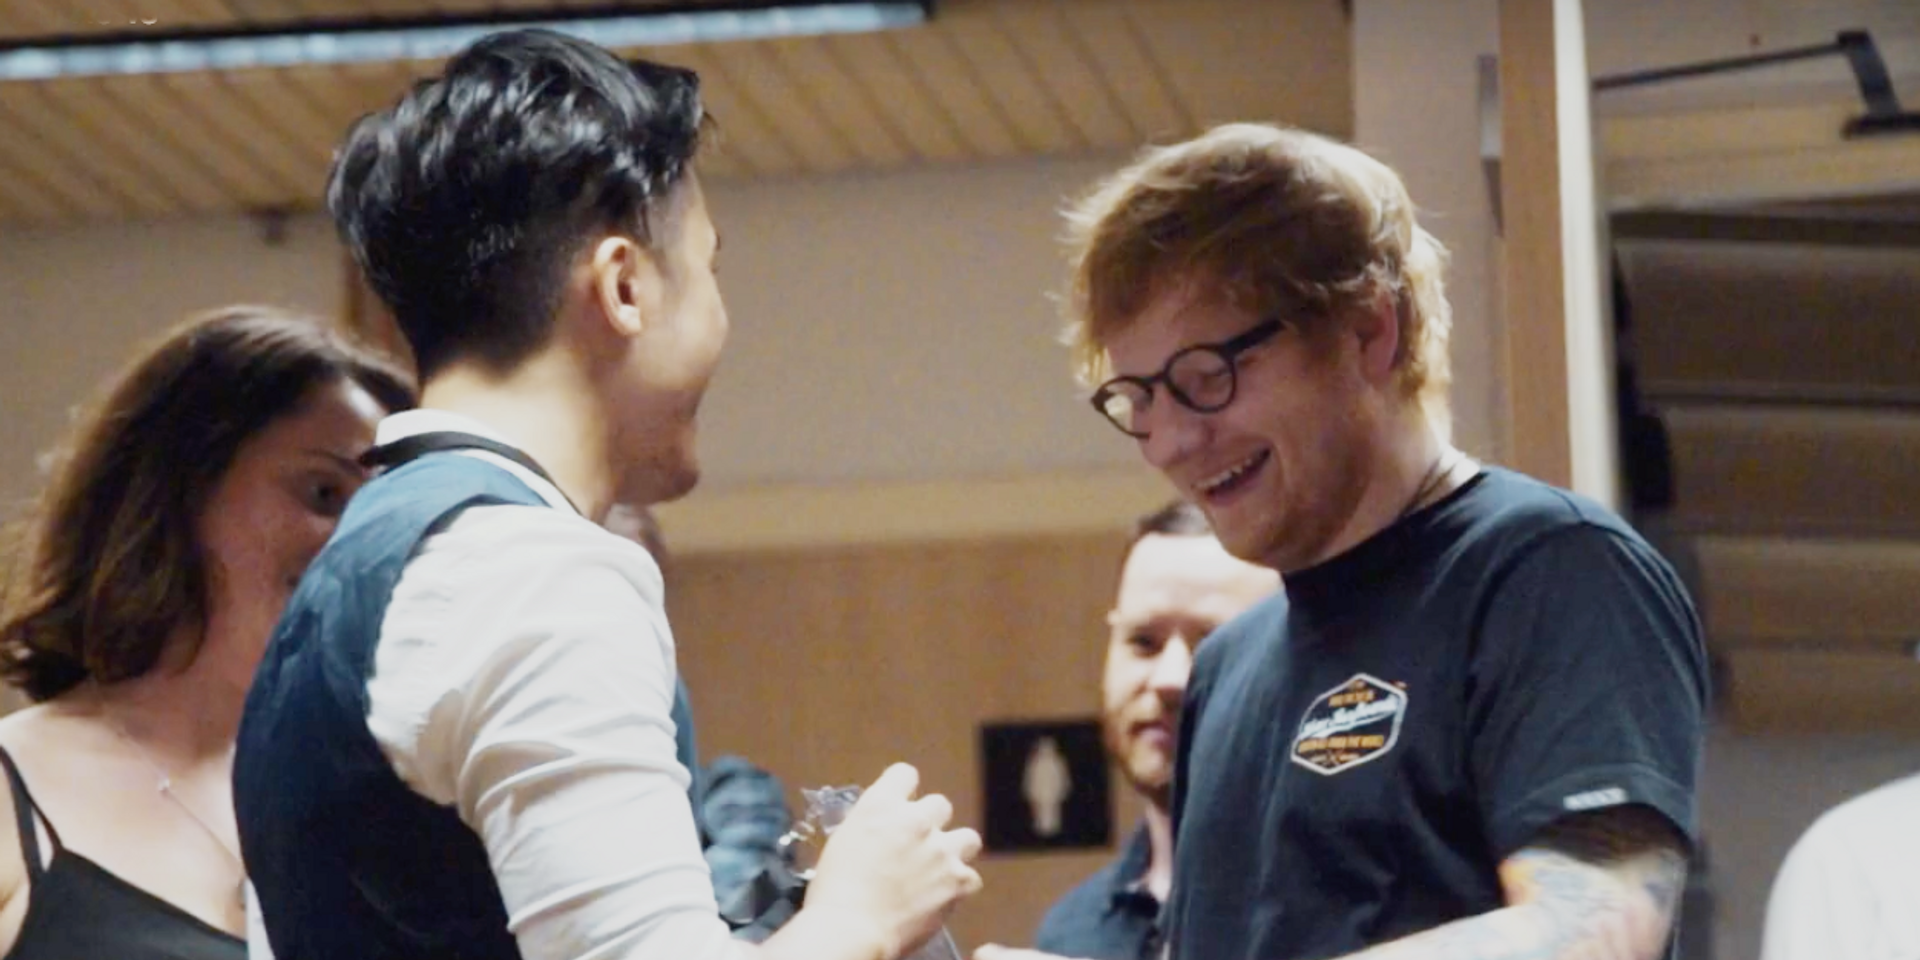 WATCH: Hirzi attempts to find Ed Sheeran in hopes of a collaboration in Sydney